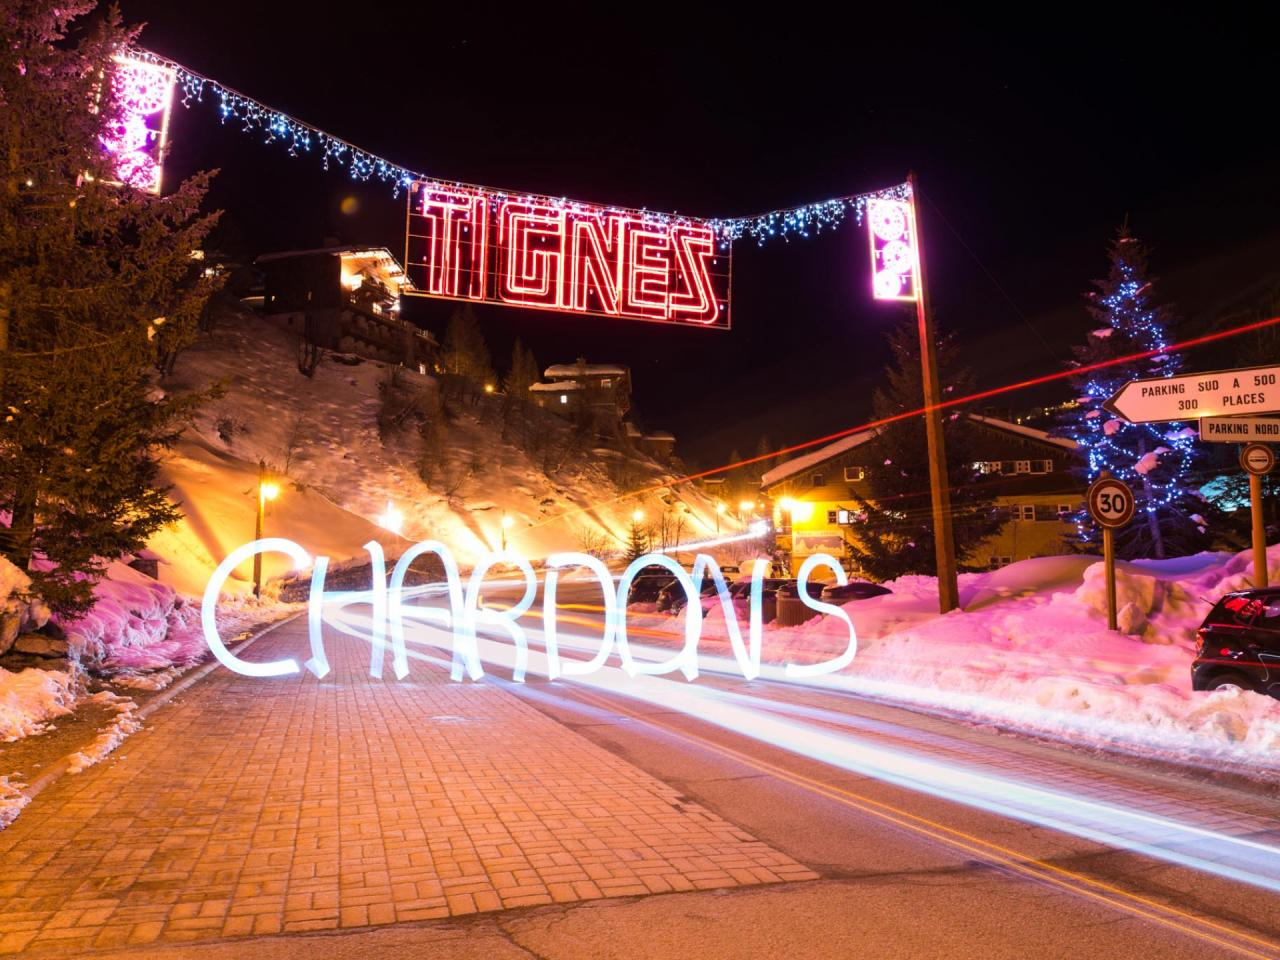 Welcome to Tignes by Chardons